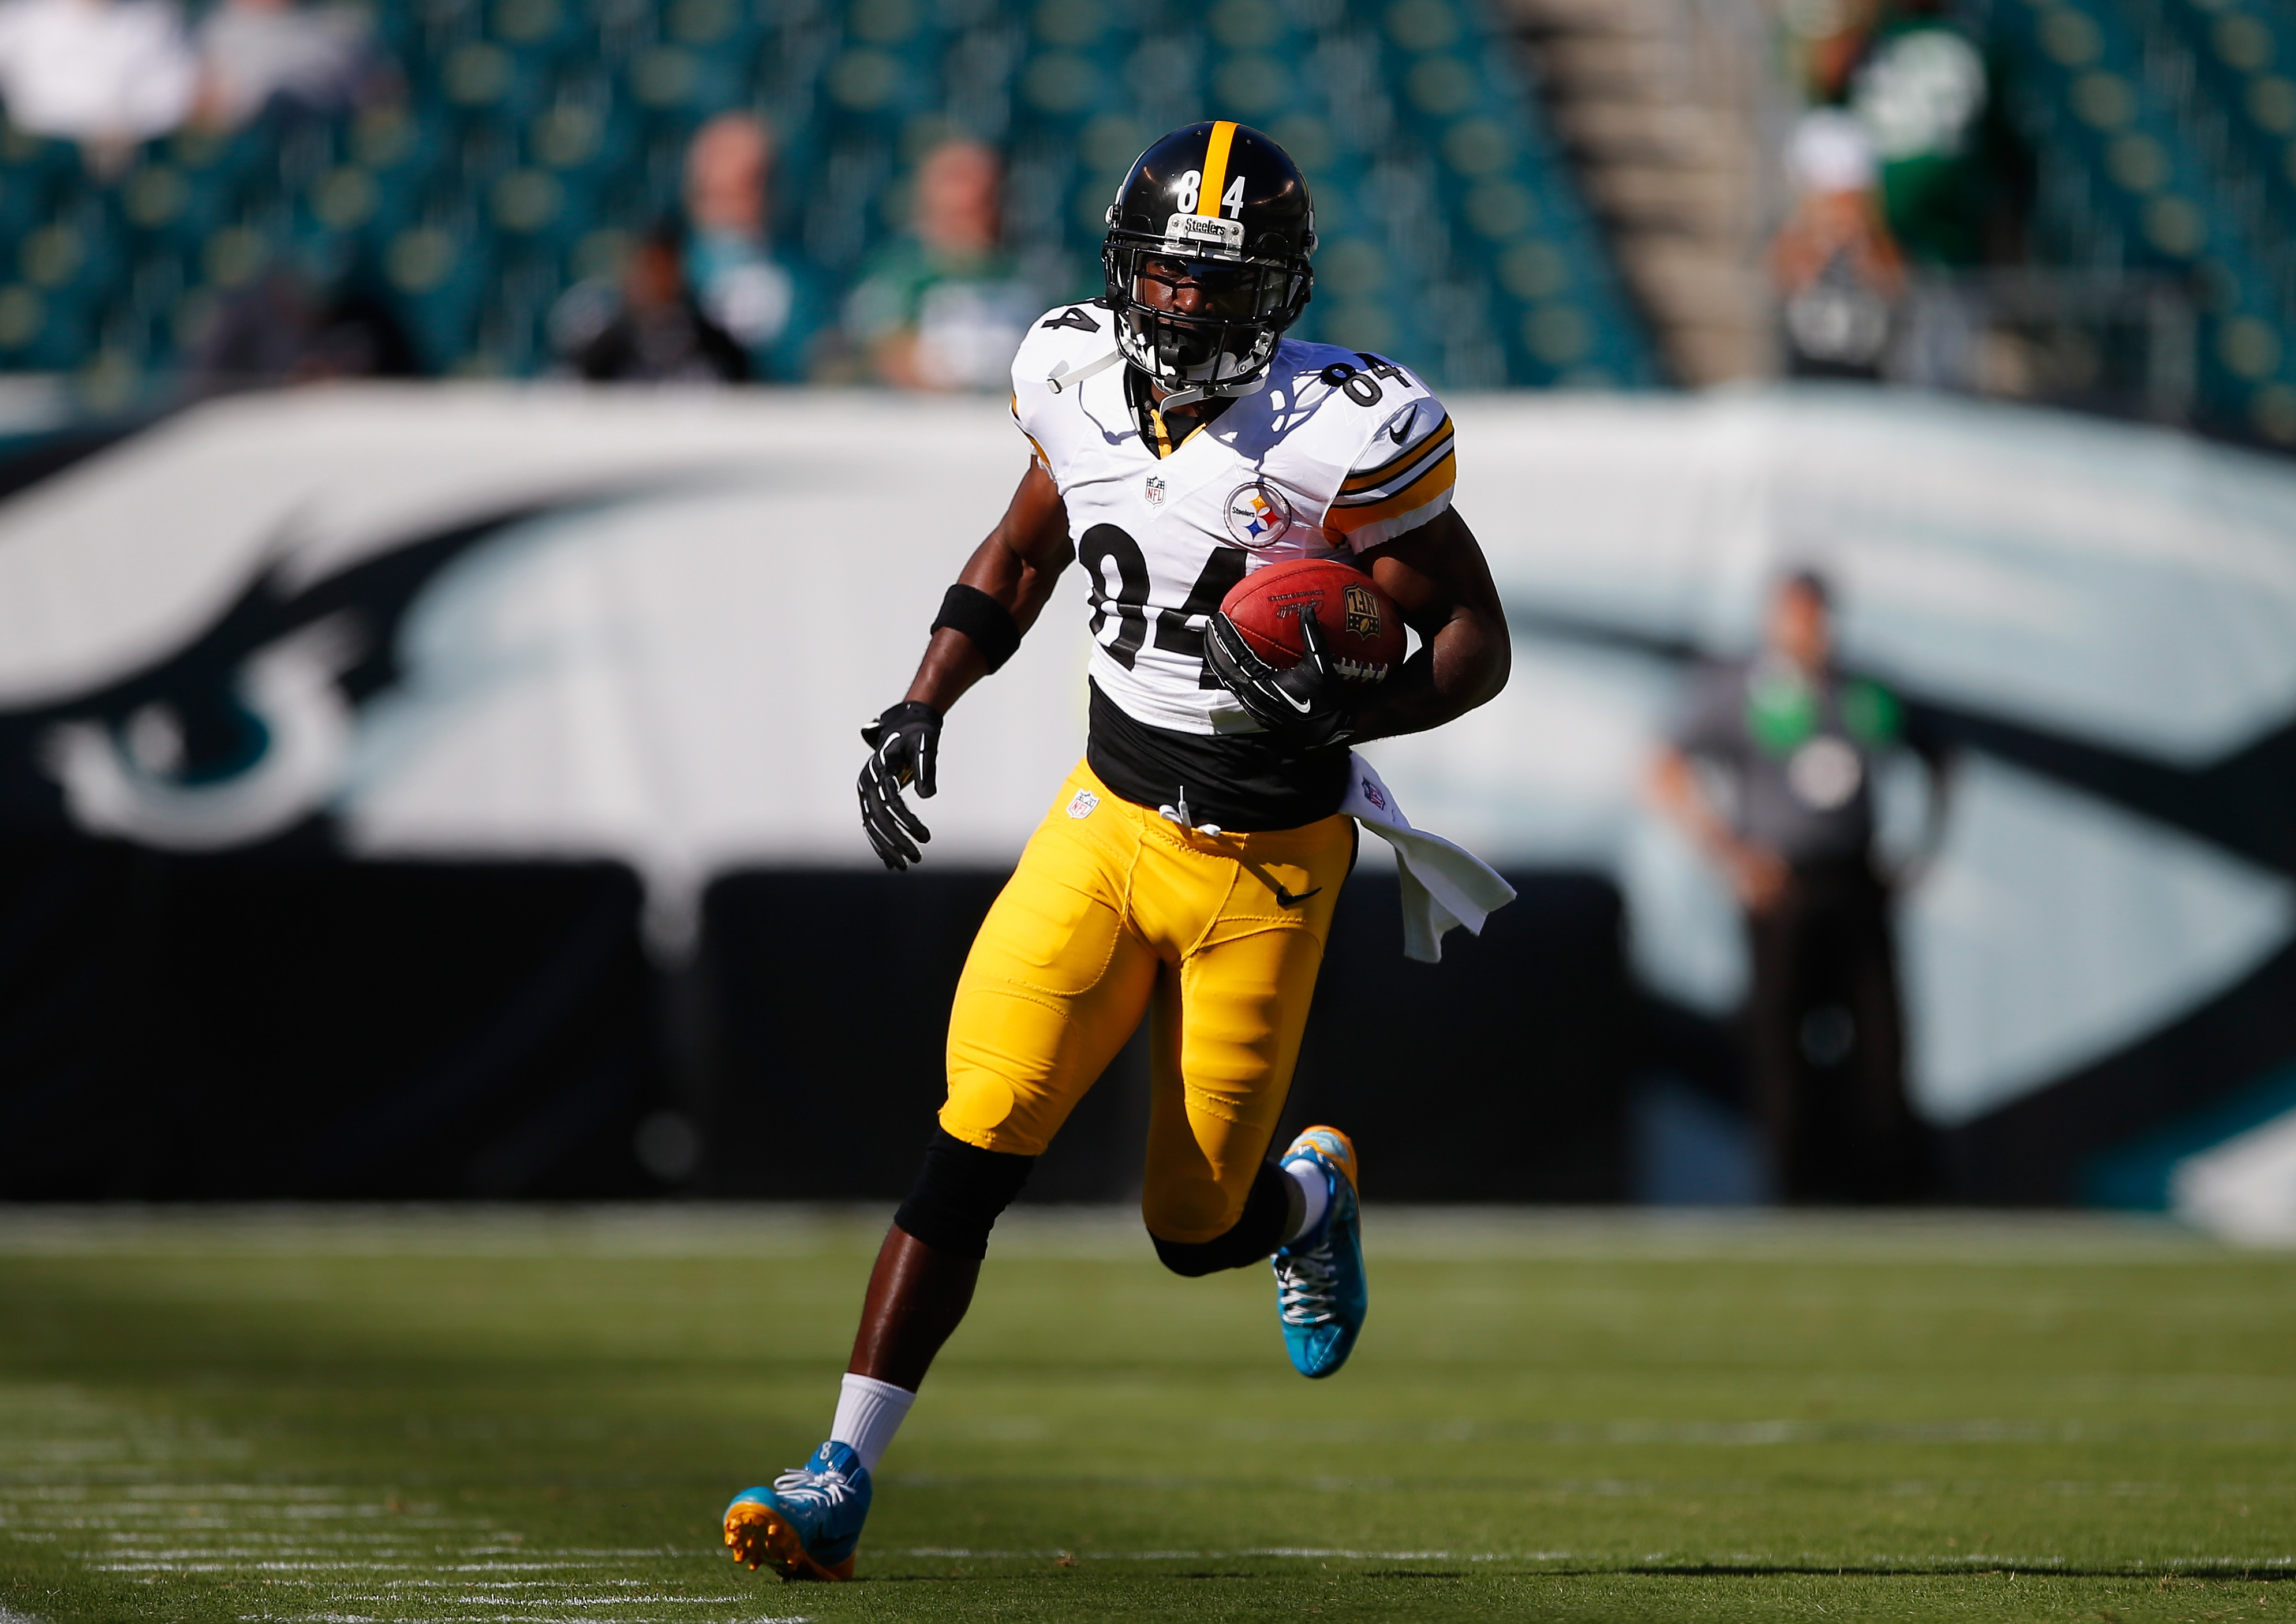 Nfl Forced Antonio Brown To Change Colorful Cleats At